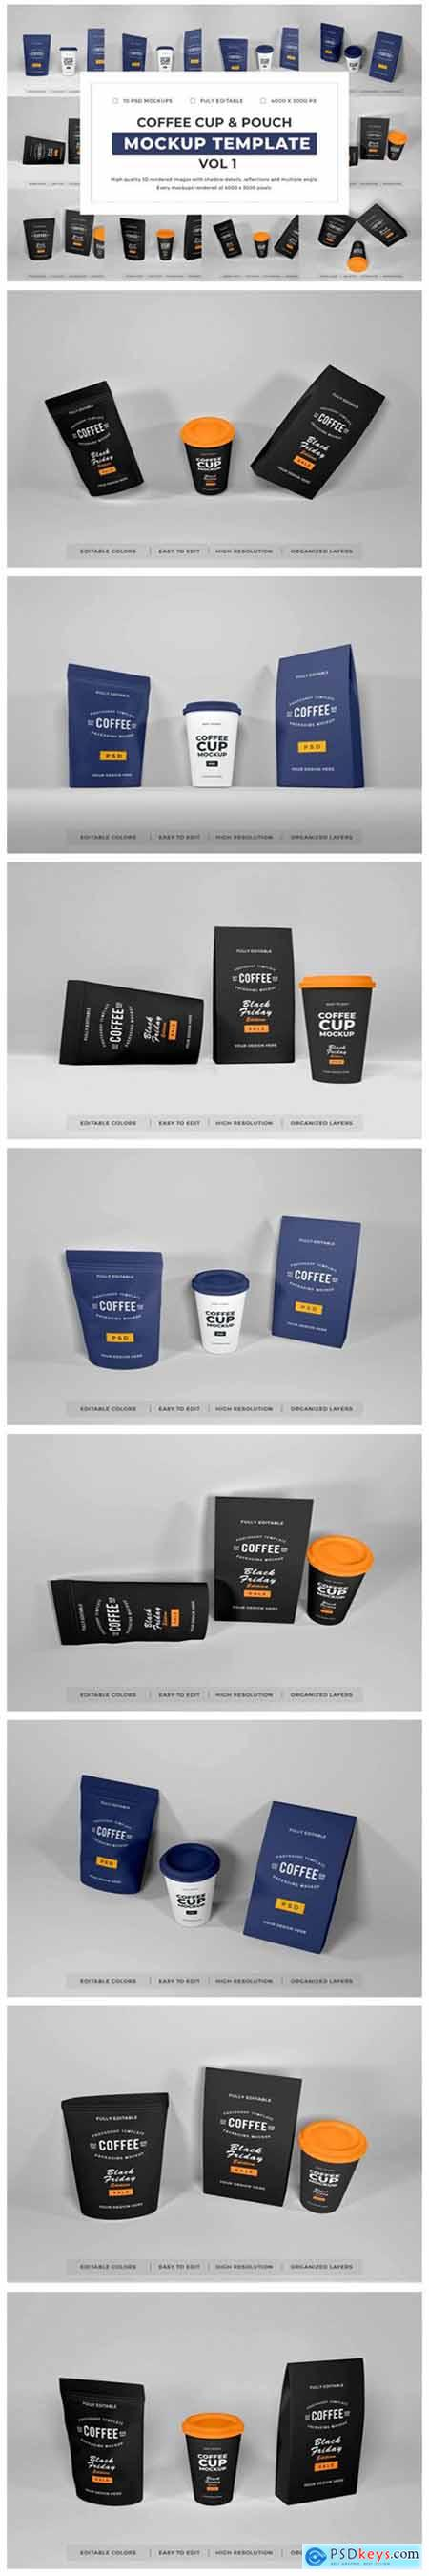 Coffee Cup and Pouch Mockup Bundle Vol 1 6704186